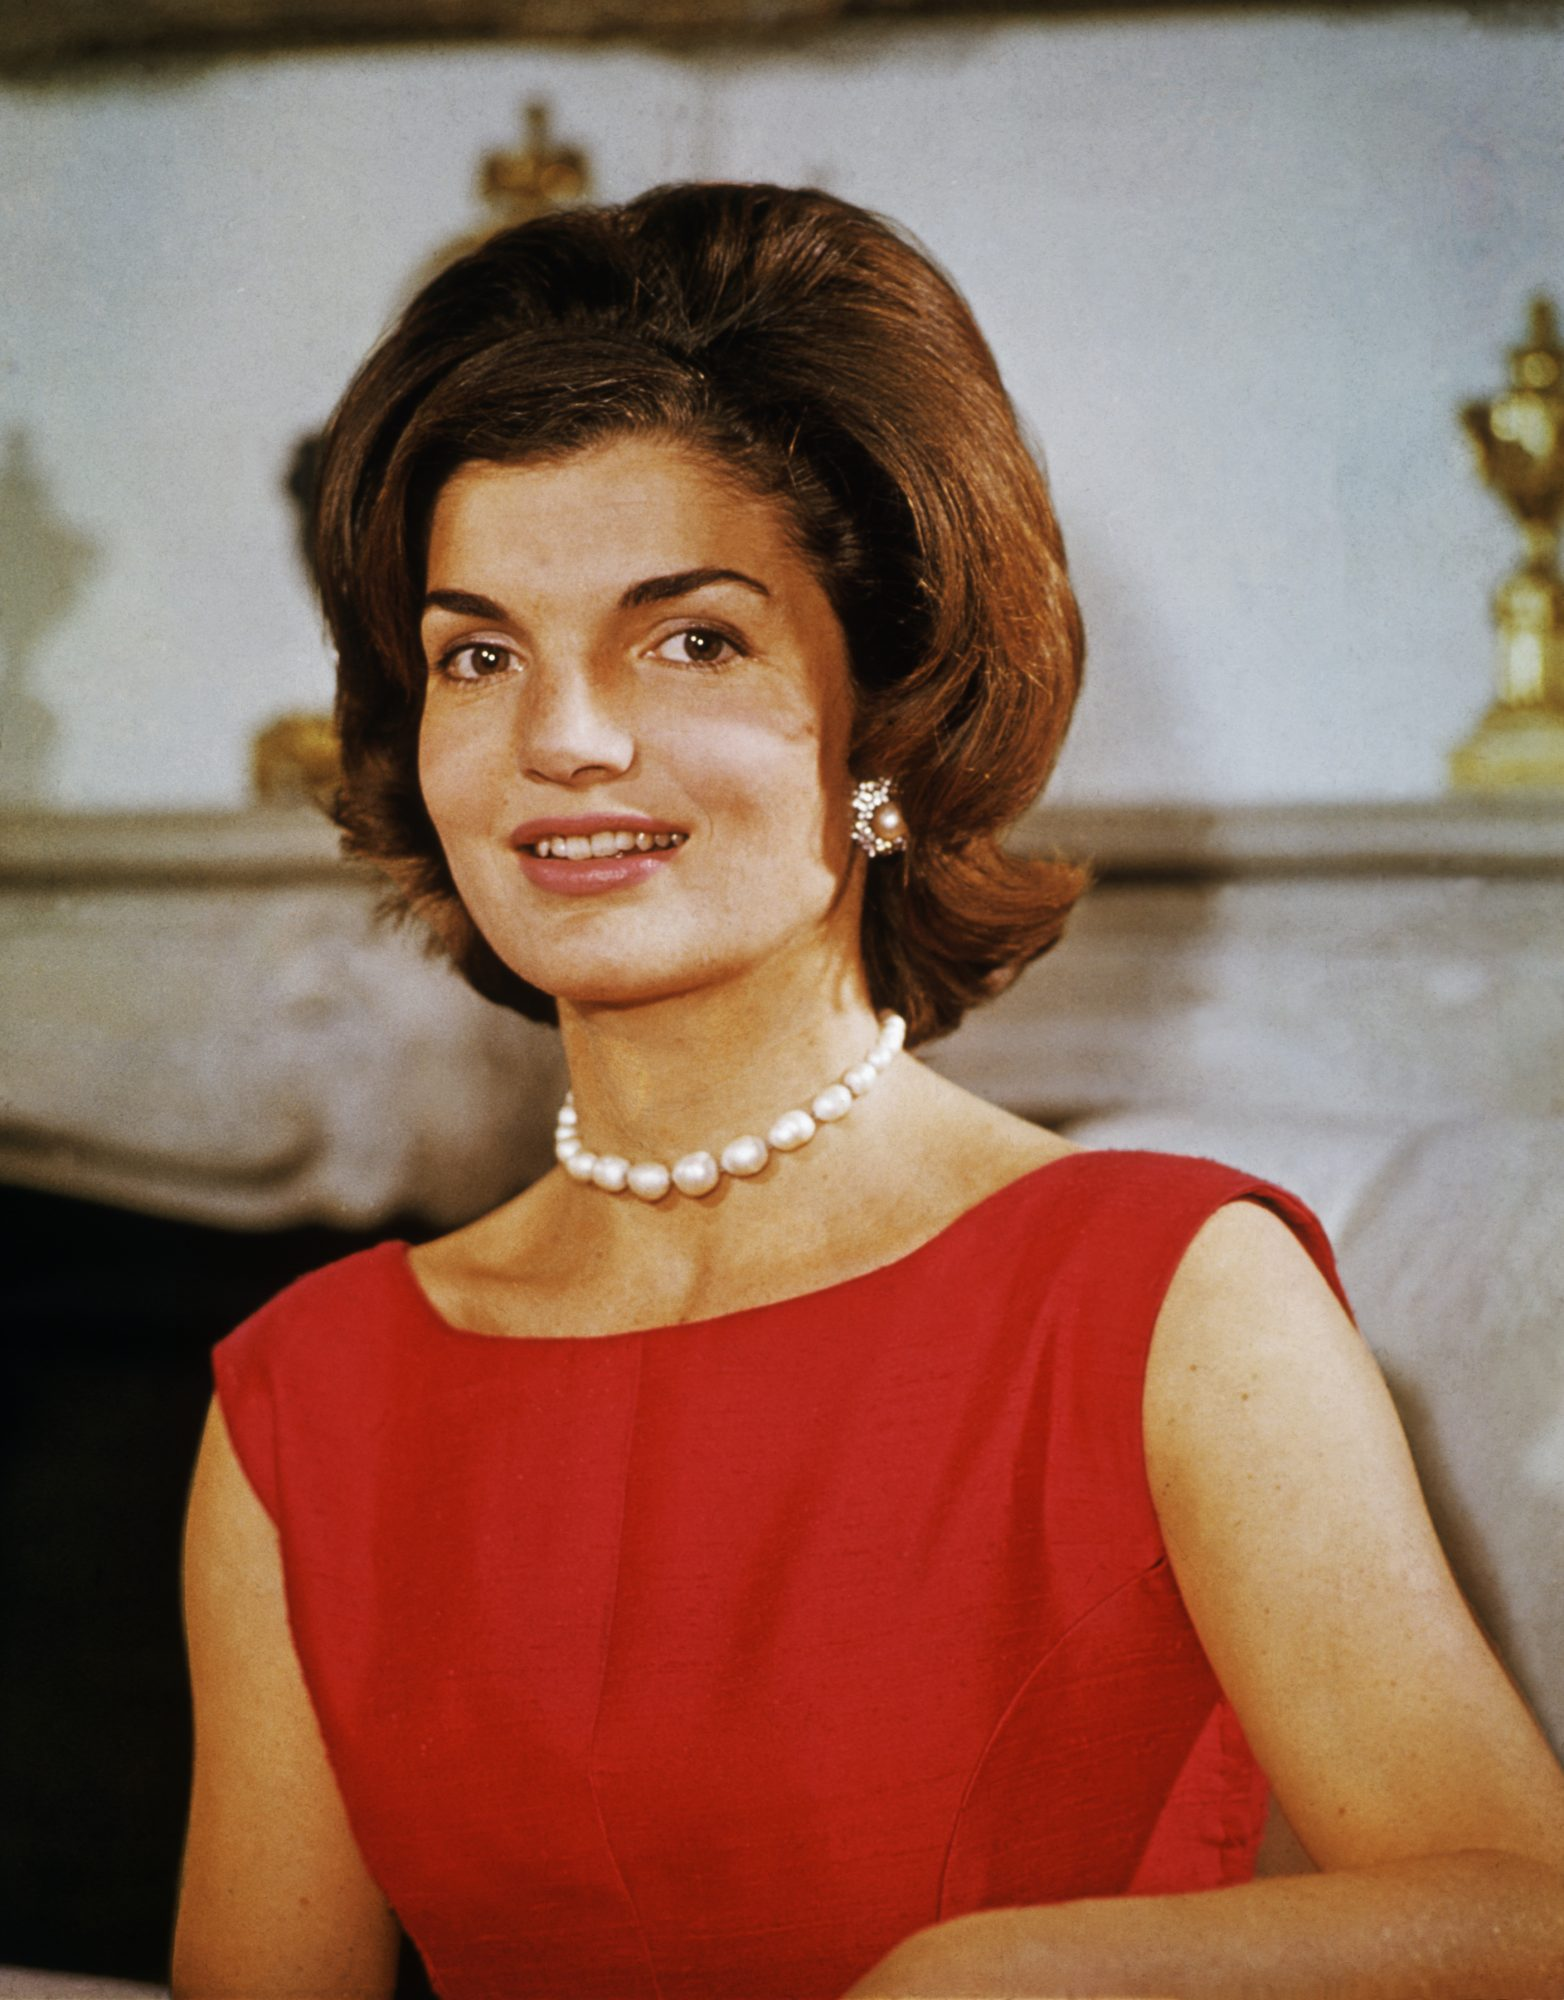 Jackie Kennedy in Red Dress with Pearls